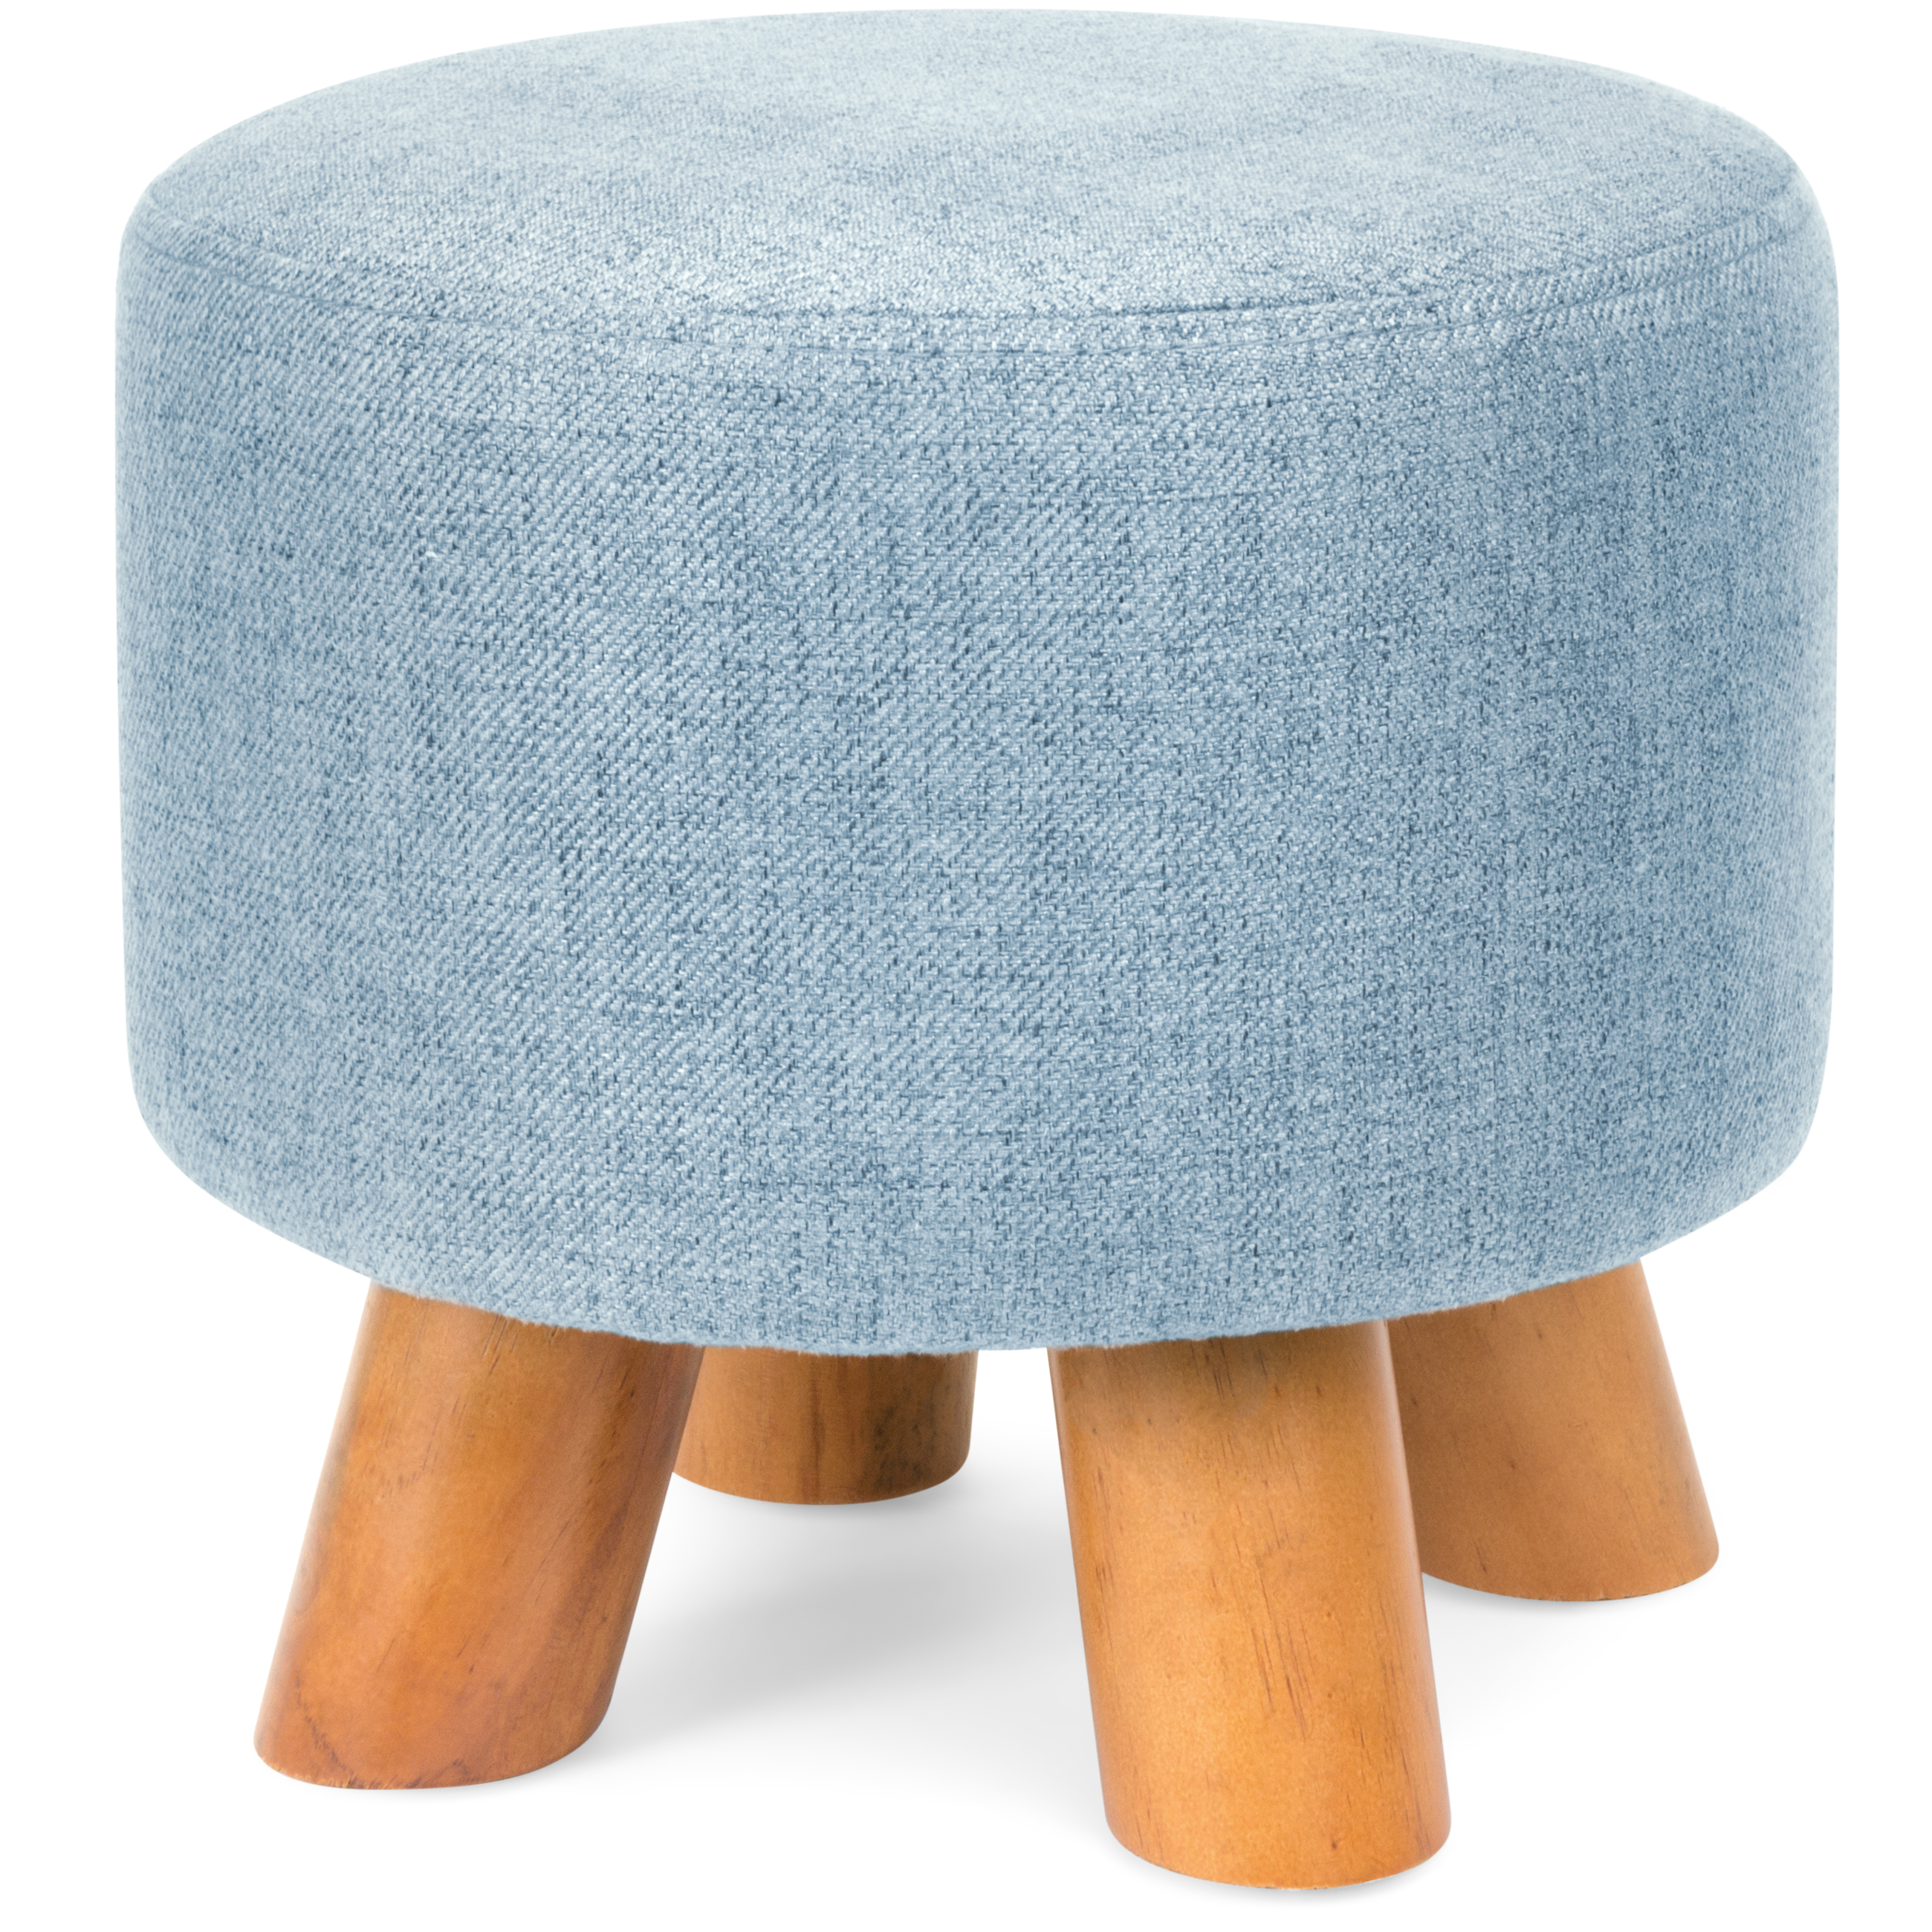 Best Choice Products Upholstered Ottoman Padded Footstool Pouf w/ Removable Linen Cover - Denim Blue